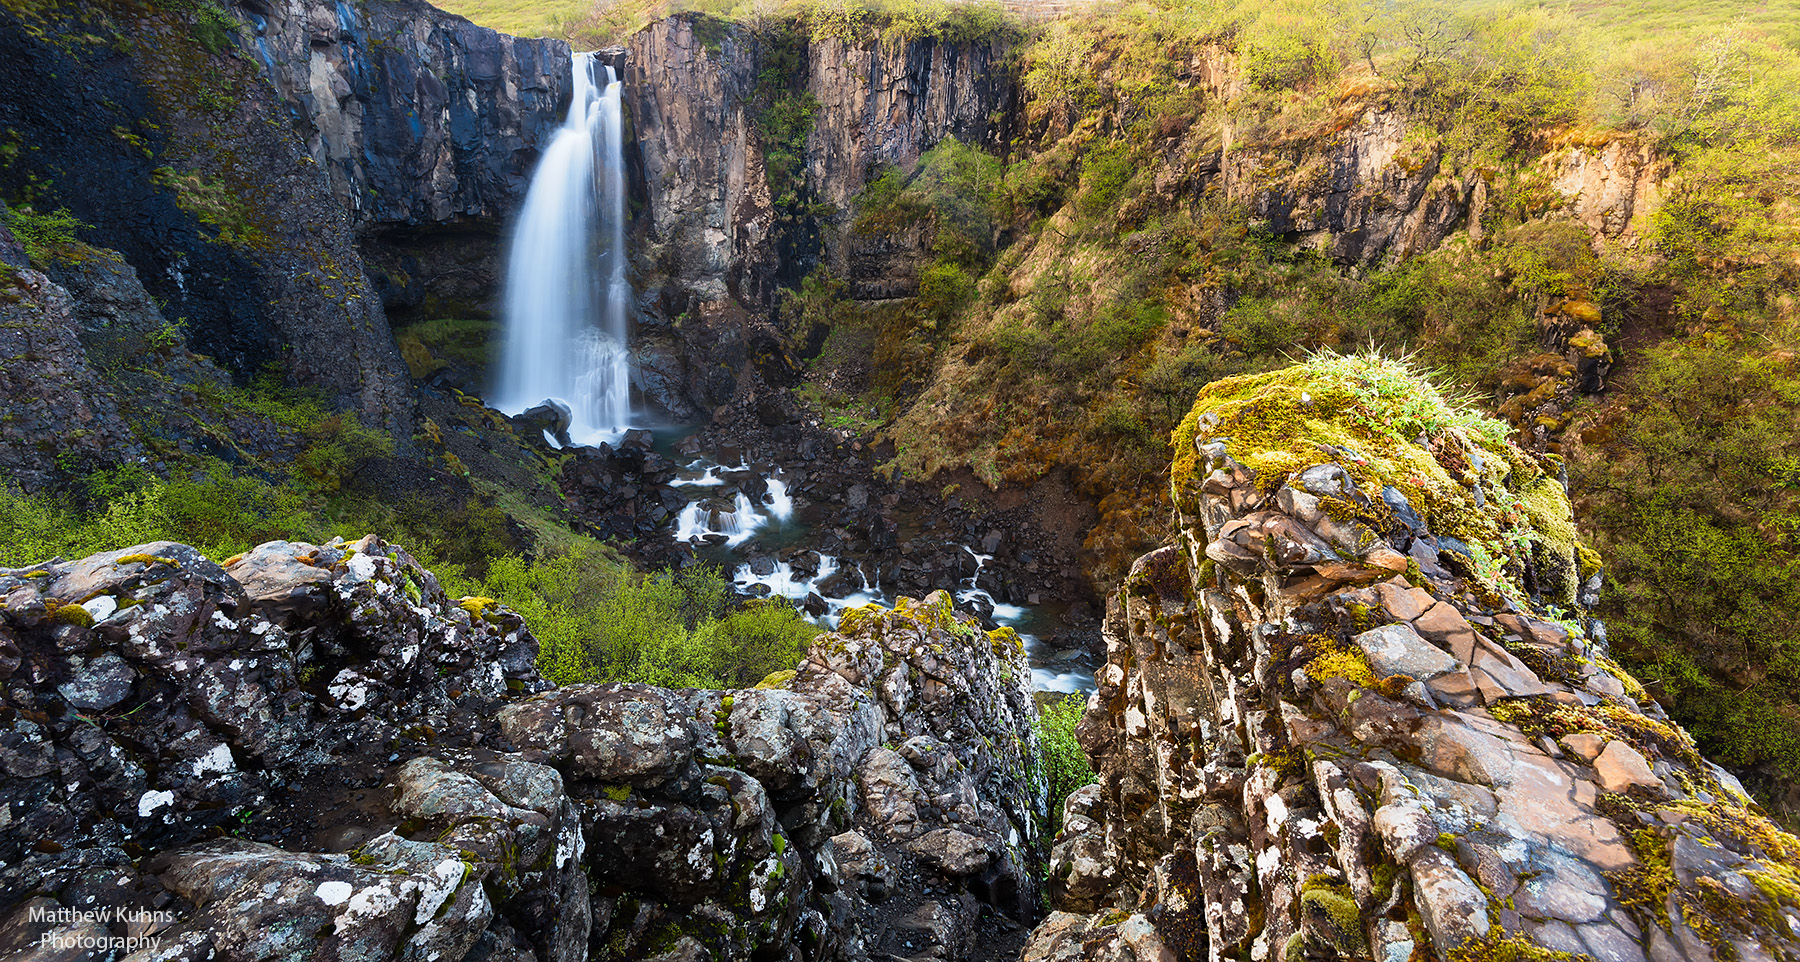 Click to Enlarge: The waterfall Hundafoss in Skaftafell National Park.